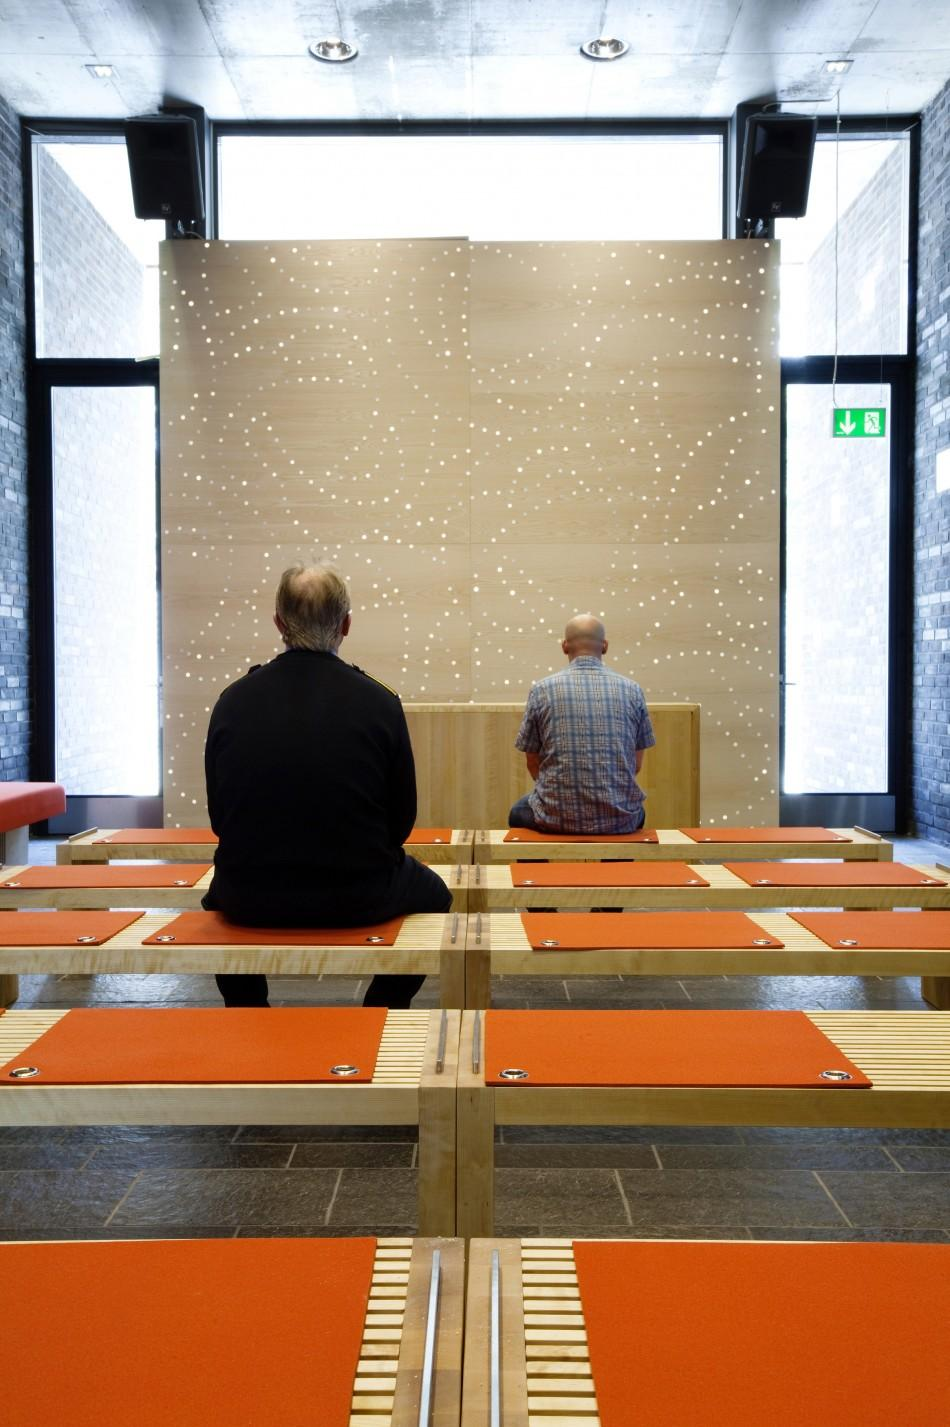 Two men sit inside the chapel at Halden prison in the far southeast of Norway in this picture taken in 2010